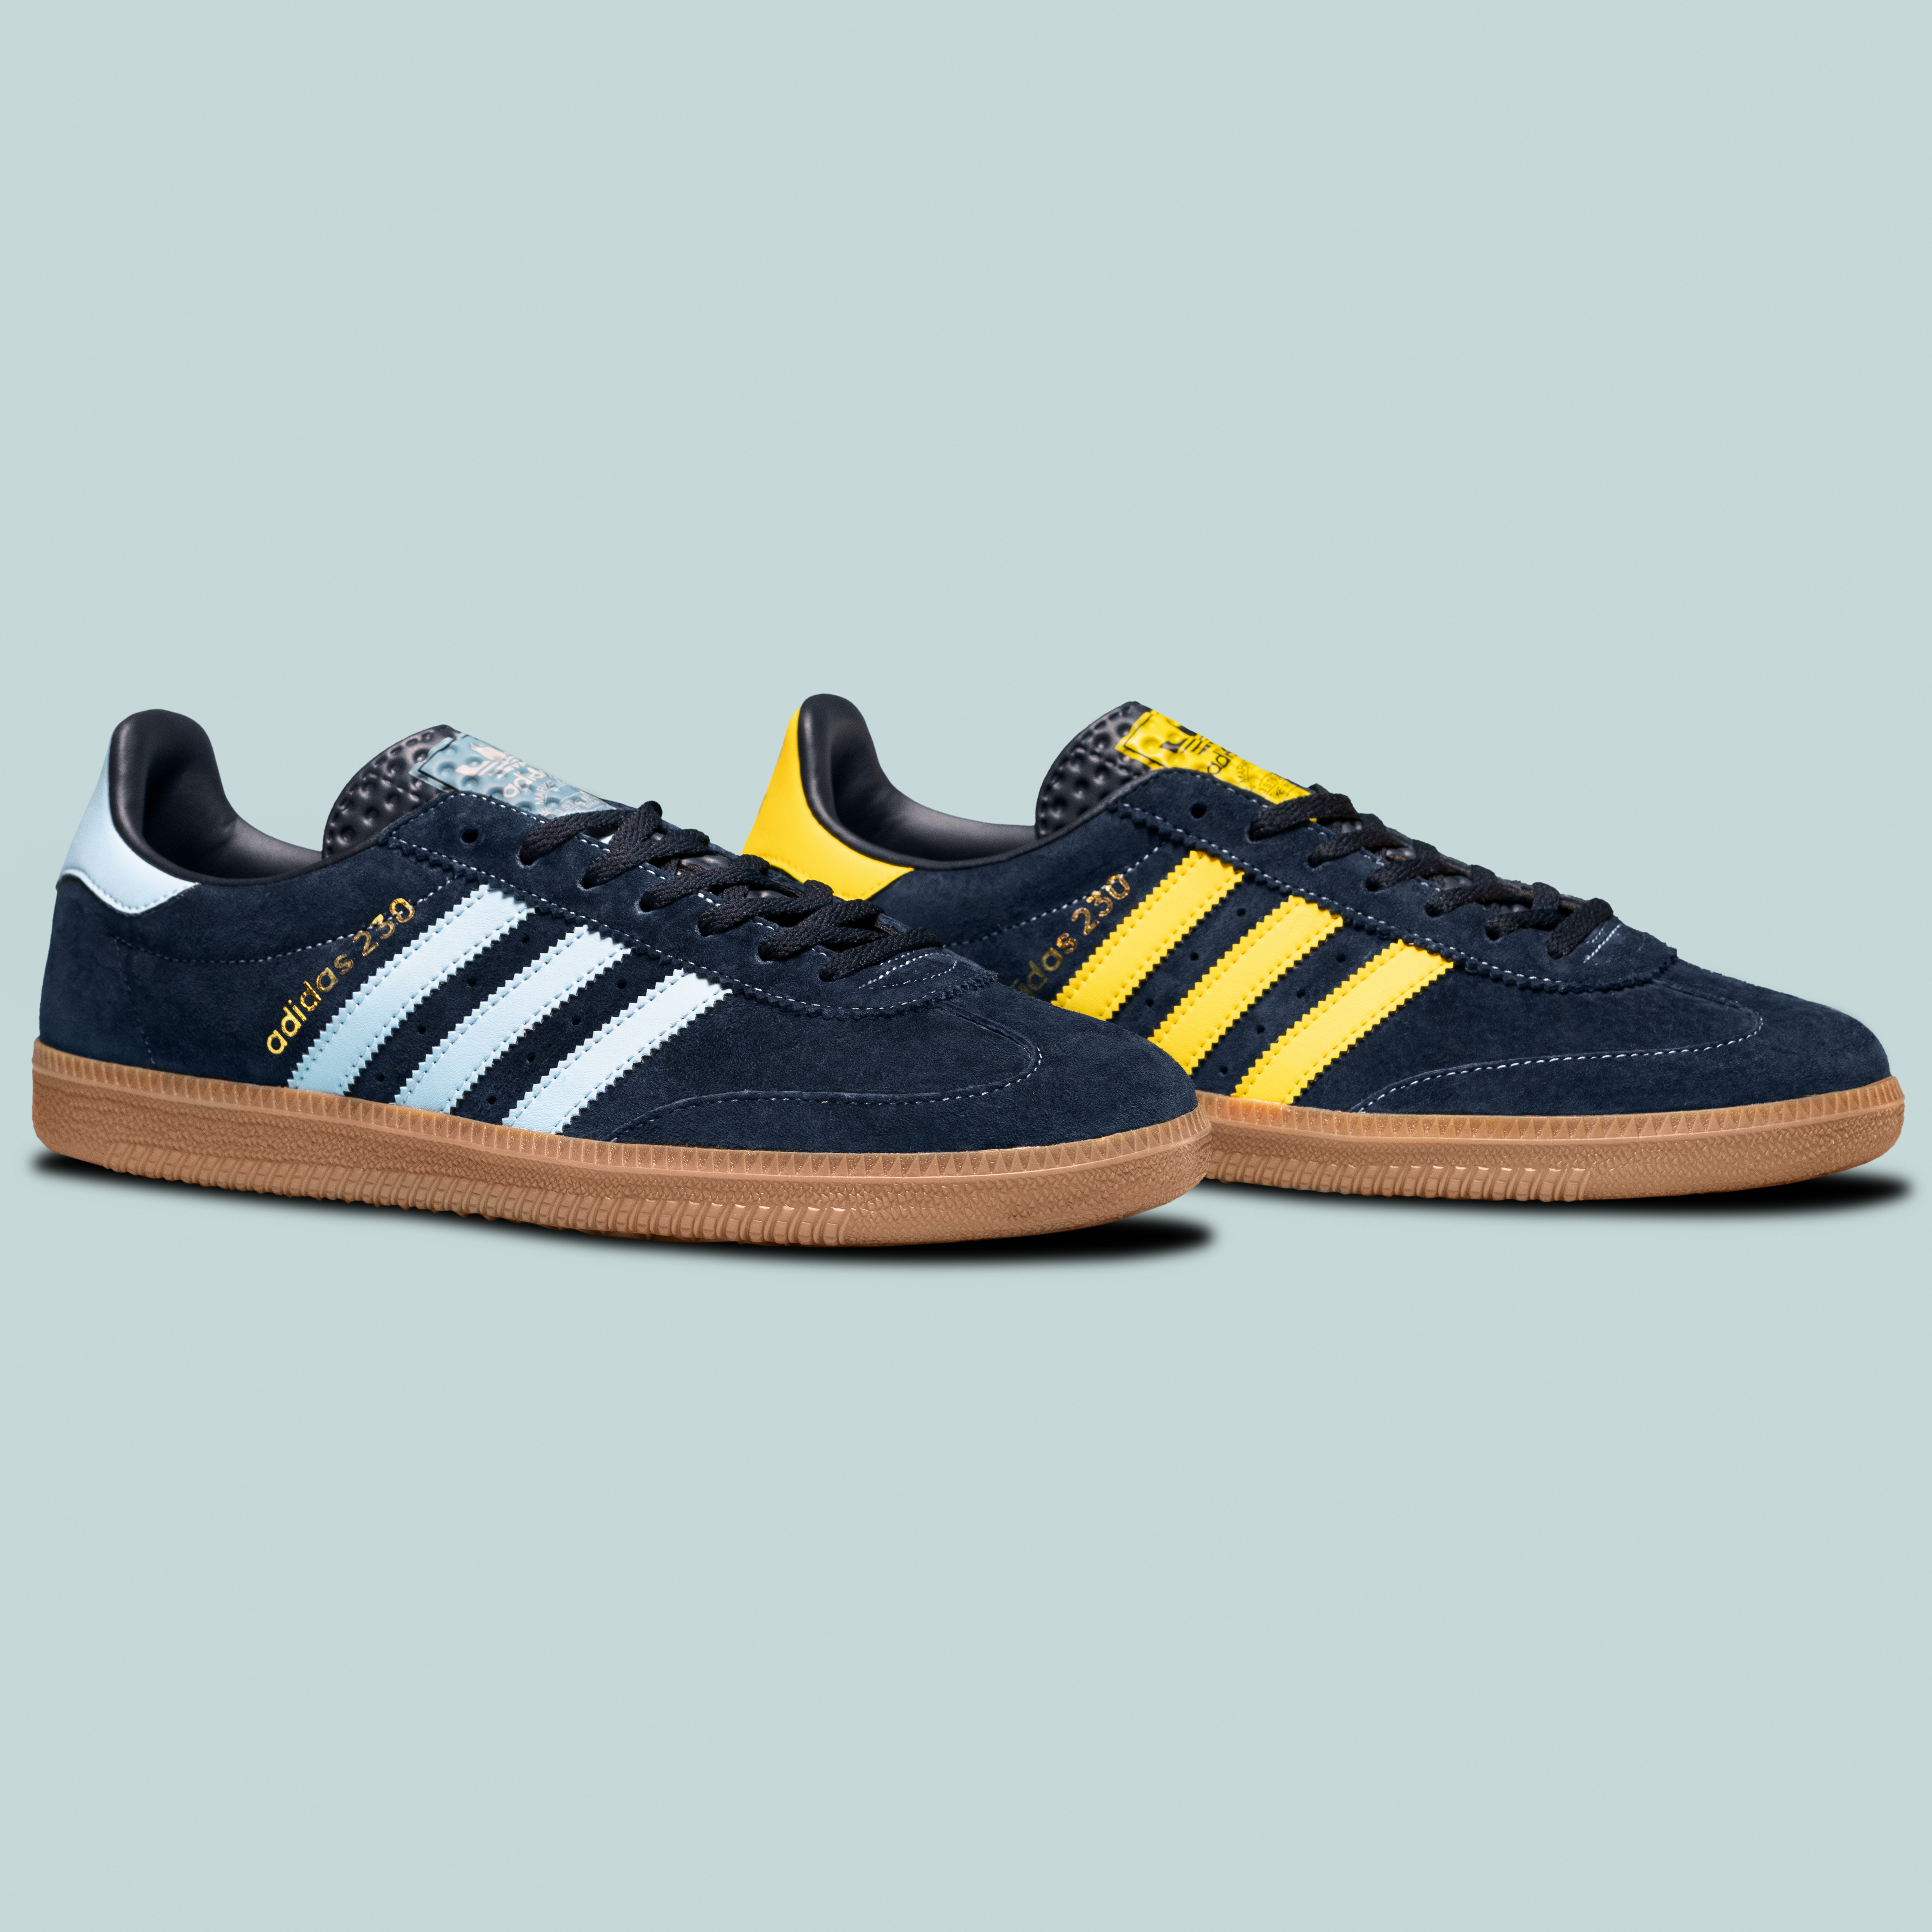 We're bringing back the adidas Originals AS 230 in two OG colourways